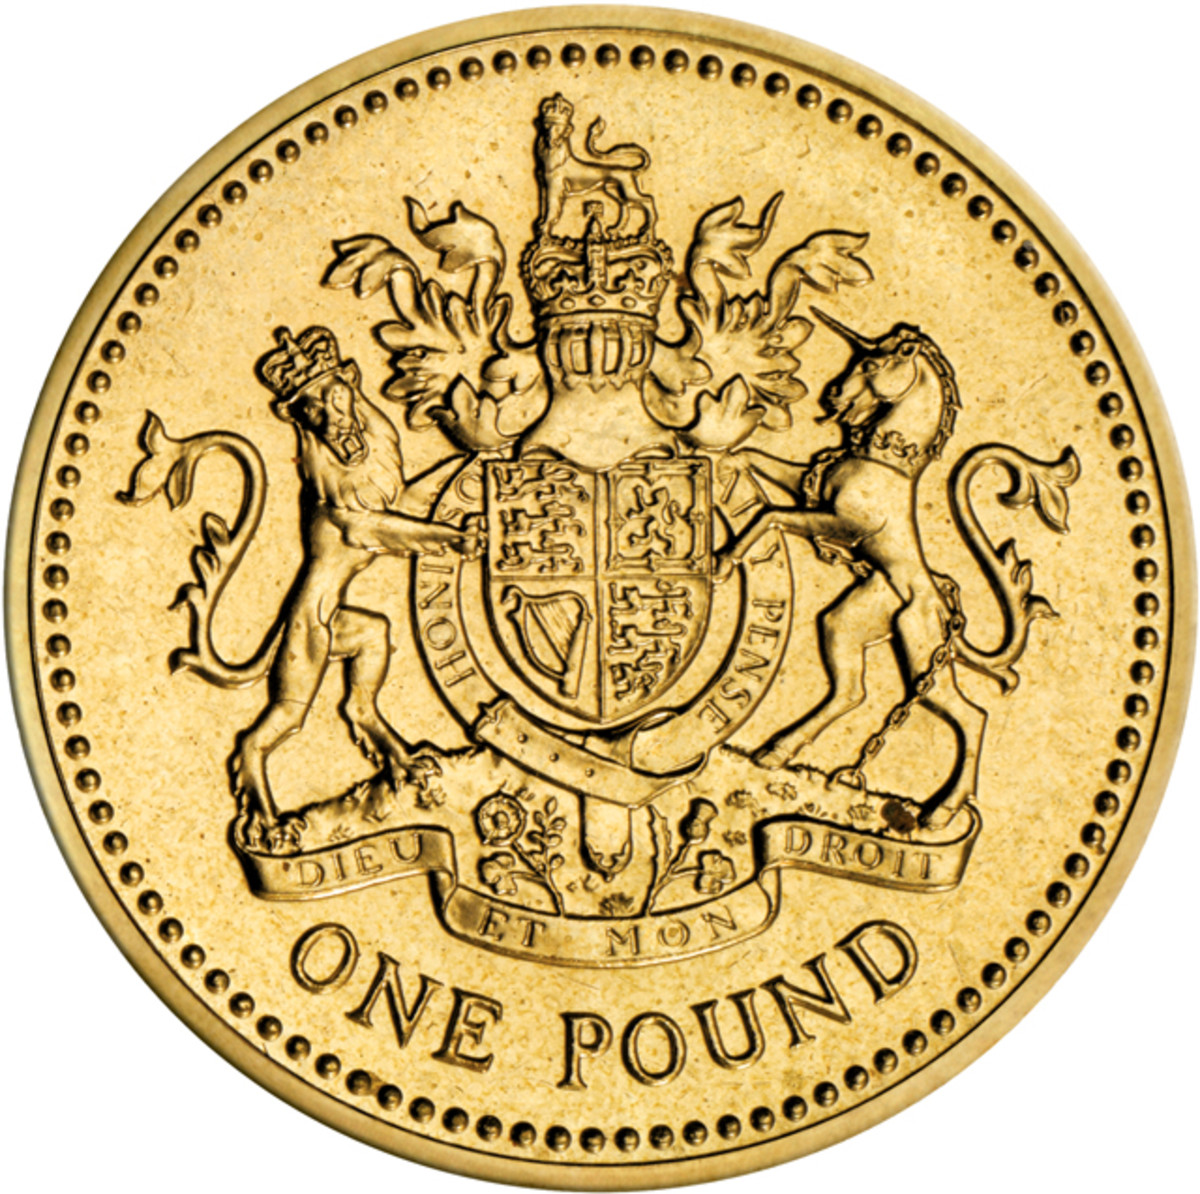 Reverse of Britain's first circulating round pound, KM#933, issued 33 years ago in 1983 as a replacement for the one pound note. Image courtesy and © The Royal Mint.